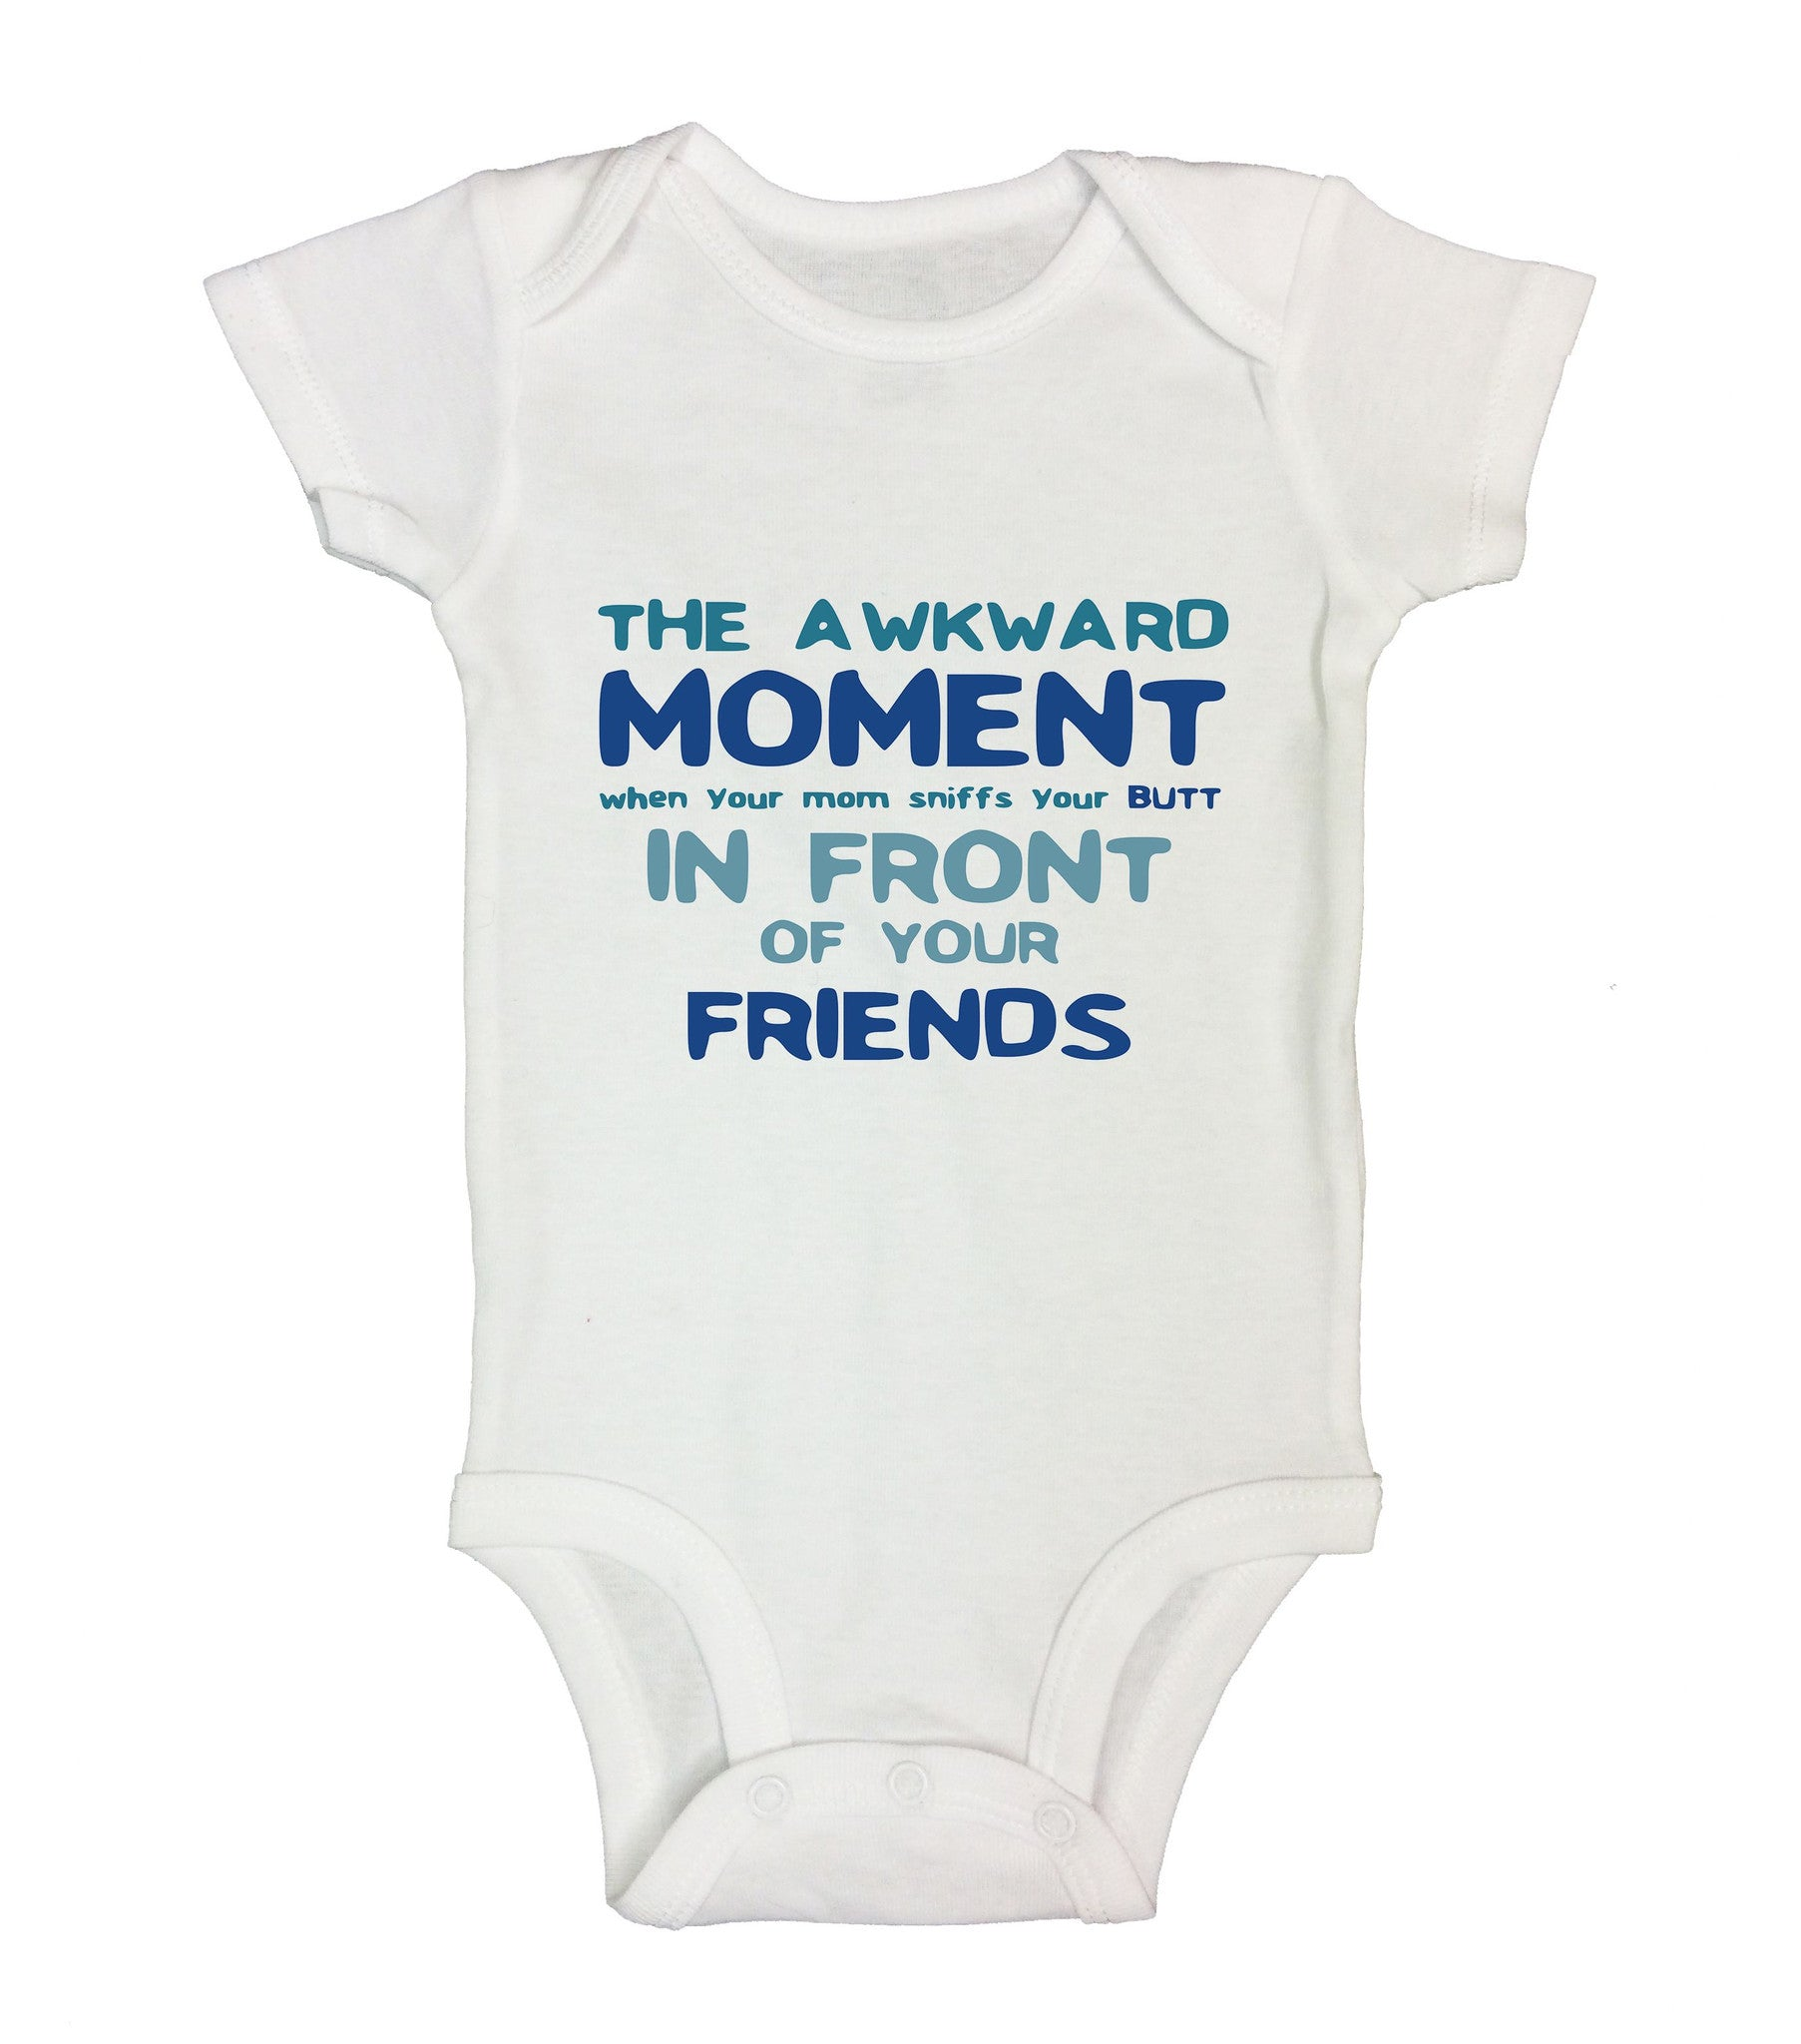 The Awkward Moment When Your Mom Sniffs Your Butt In Front Of Your Friends Funny Kids Onesie - B36 - Funny Shirts Tank Tops Burnouts and Triblends  - 2